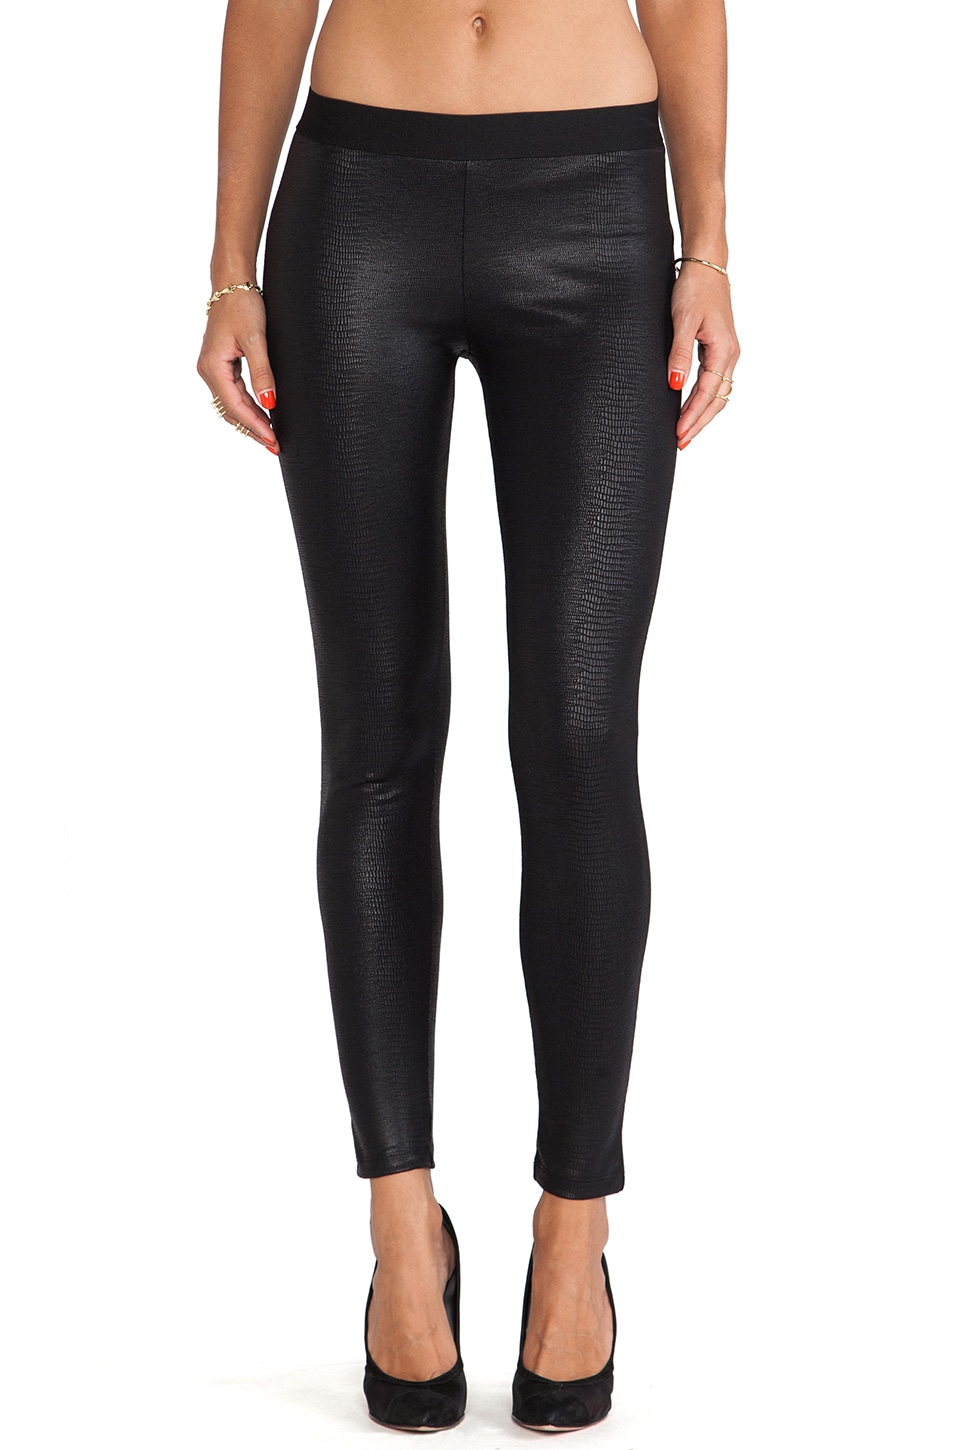 David Lerner Coated Lizard Yoke Legging in Classic Black